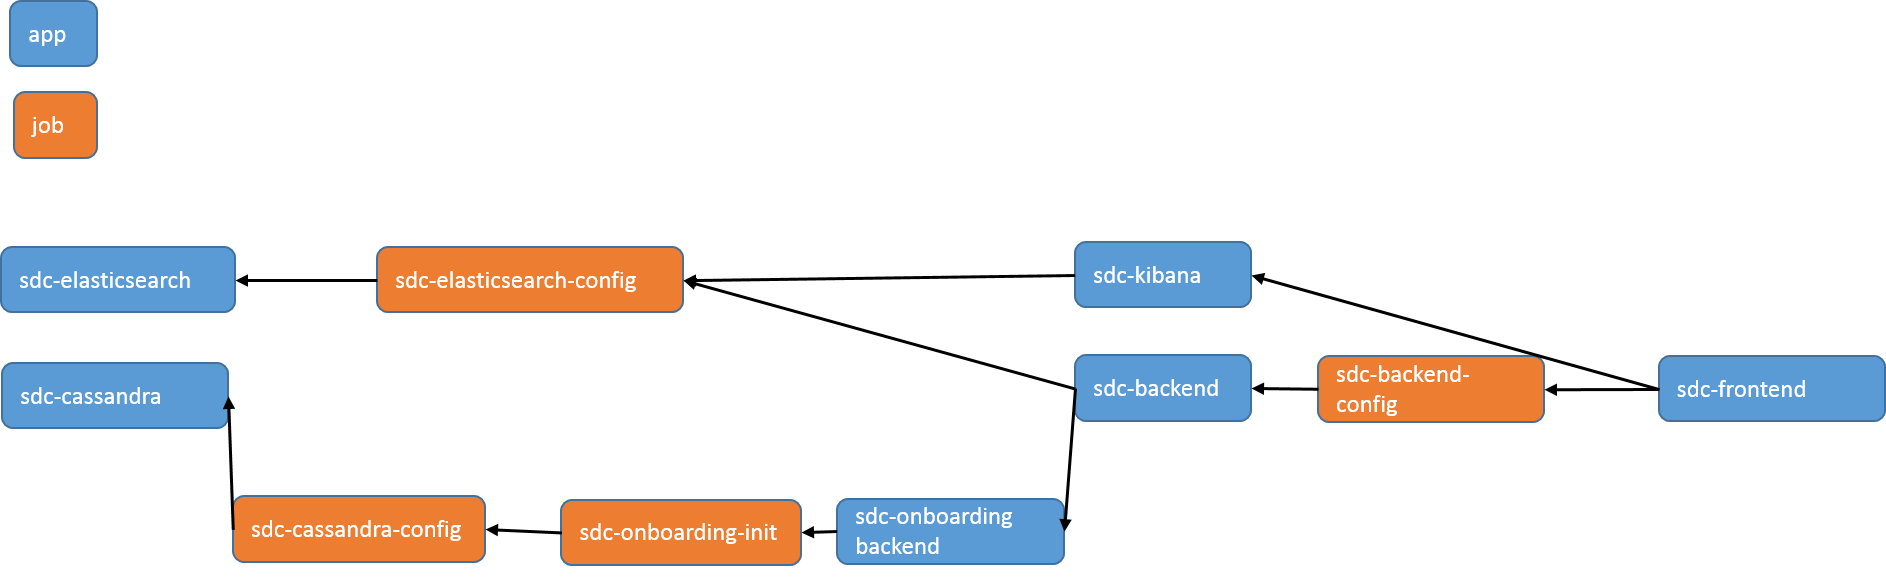 SDC Troubleshooting - Developer Wiki - Confluence